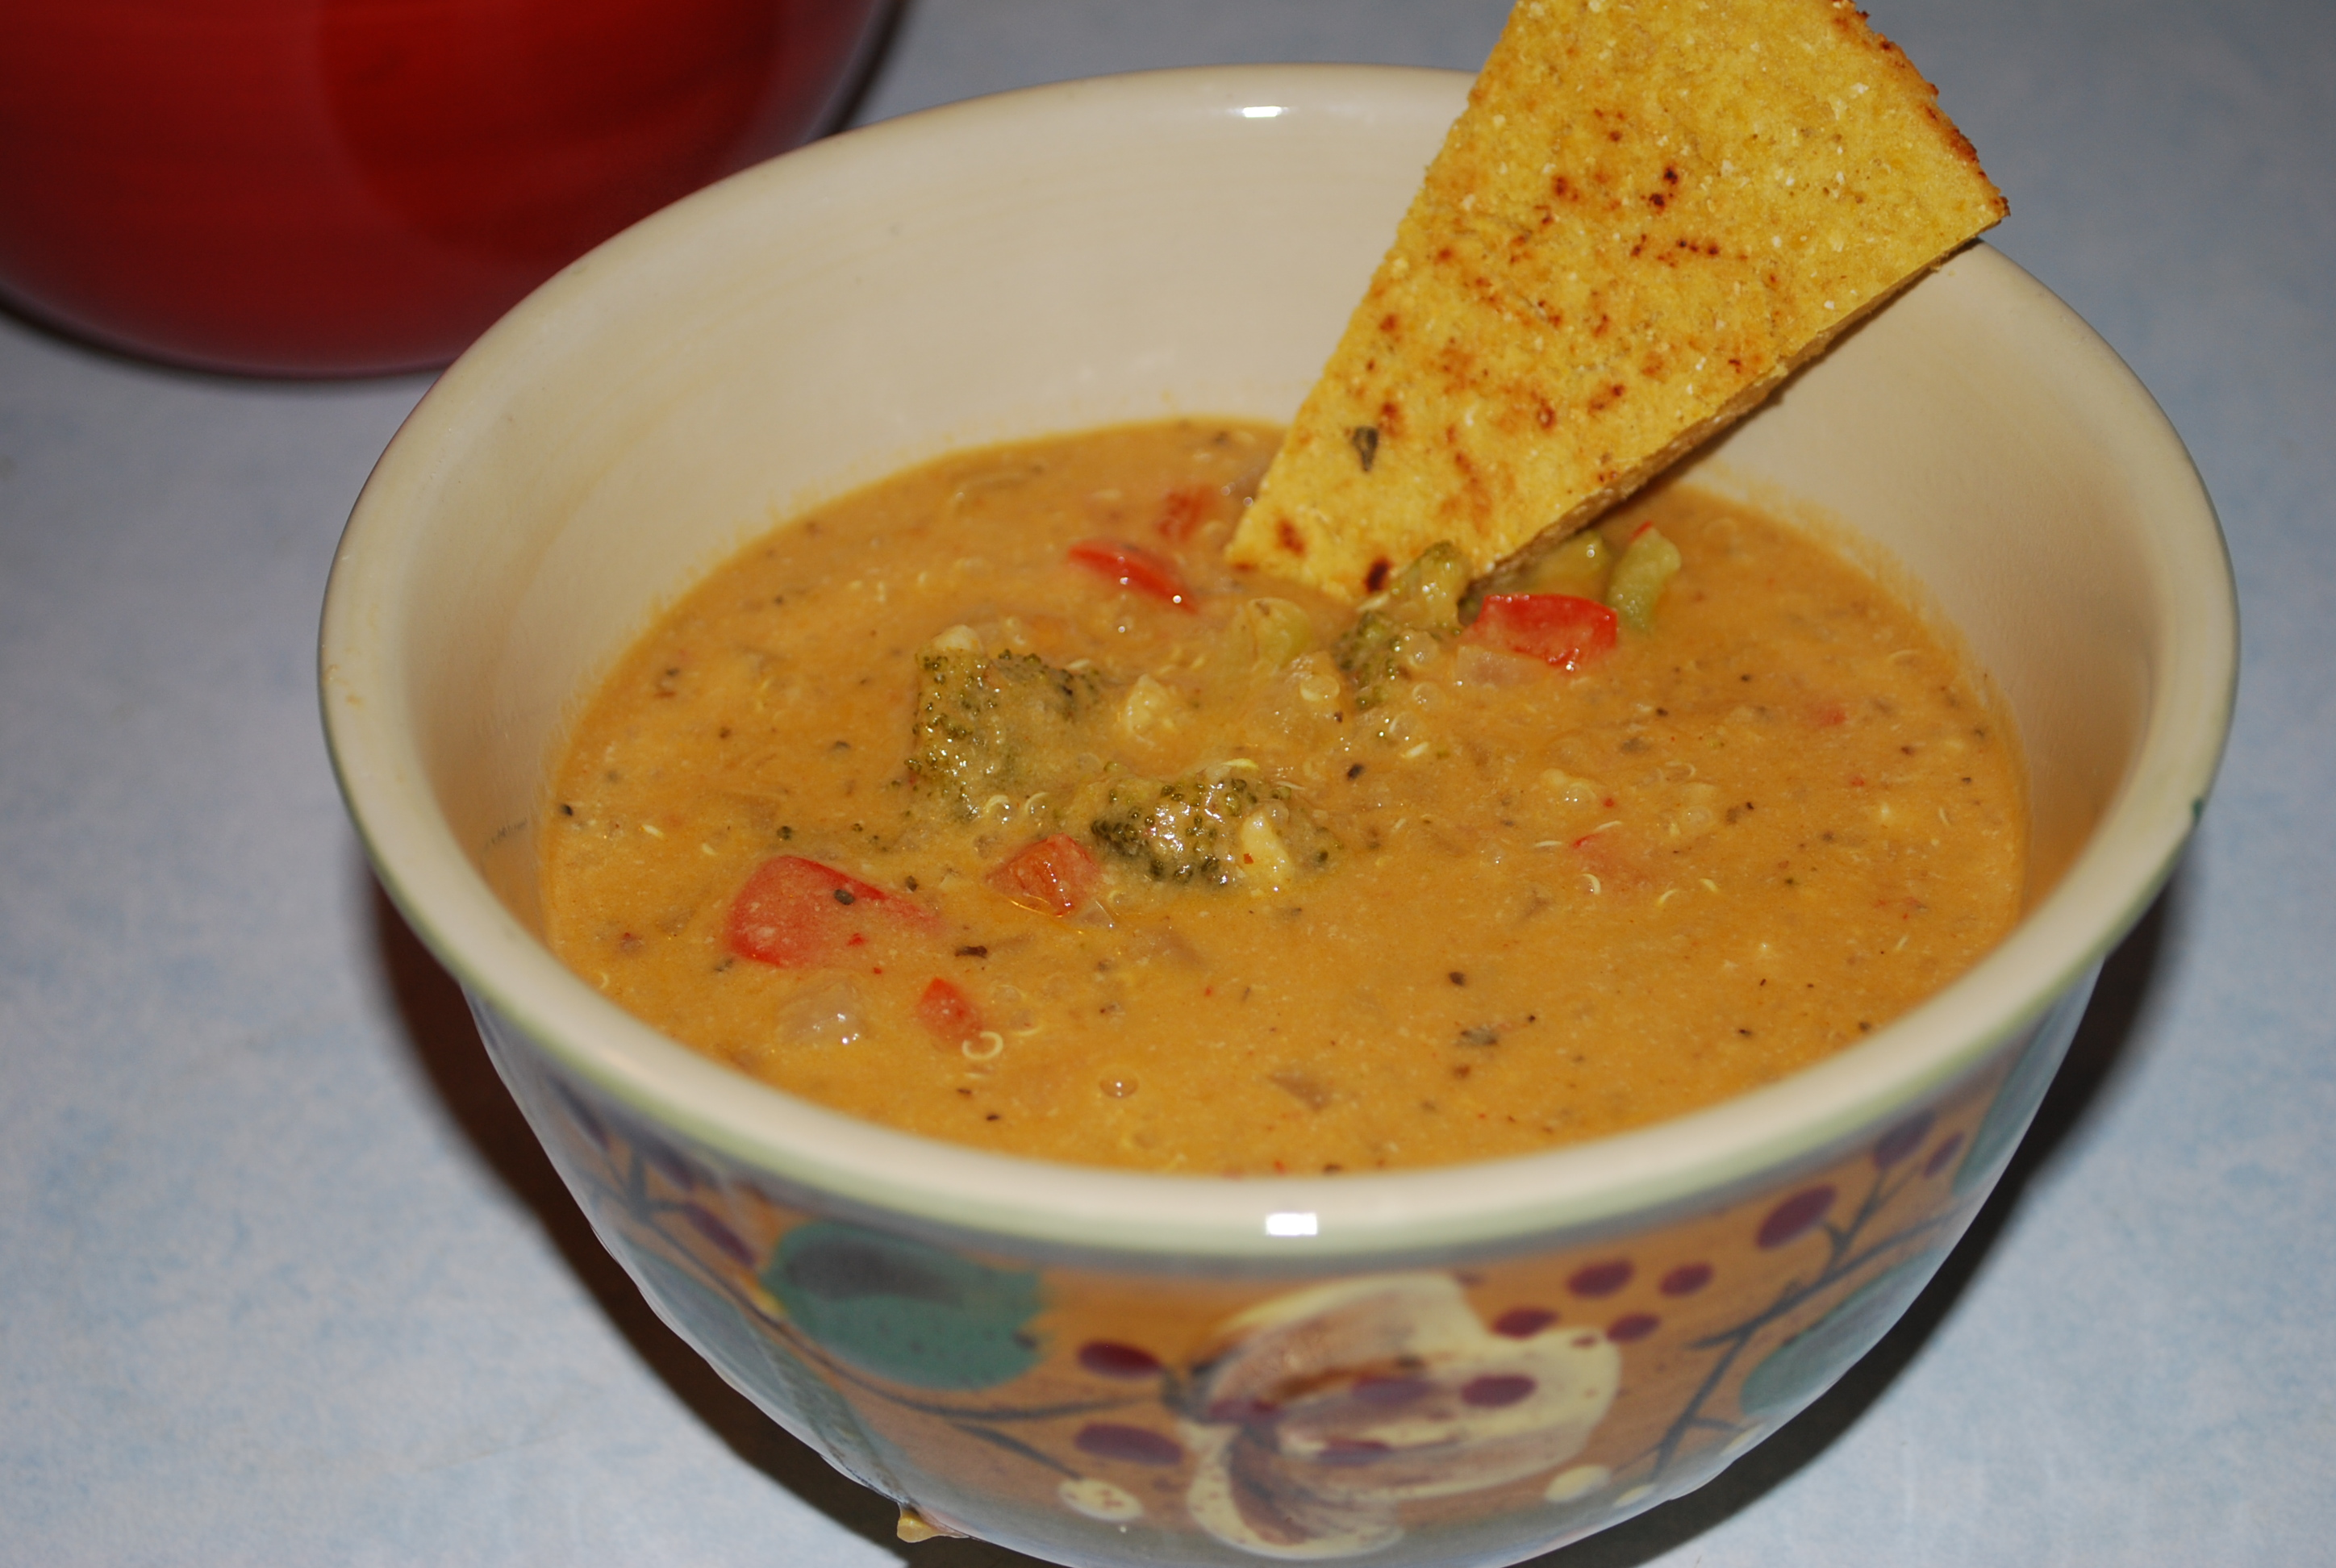 used a batch of Chipotle Hummus to flavor this soup per the recipe ...